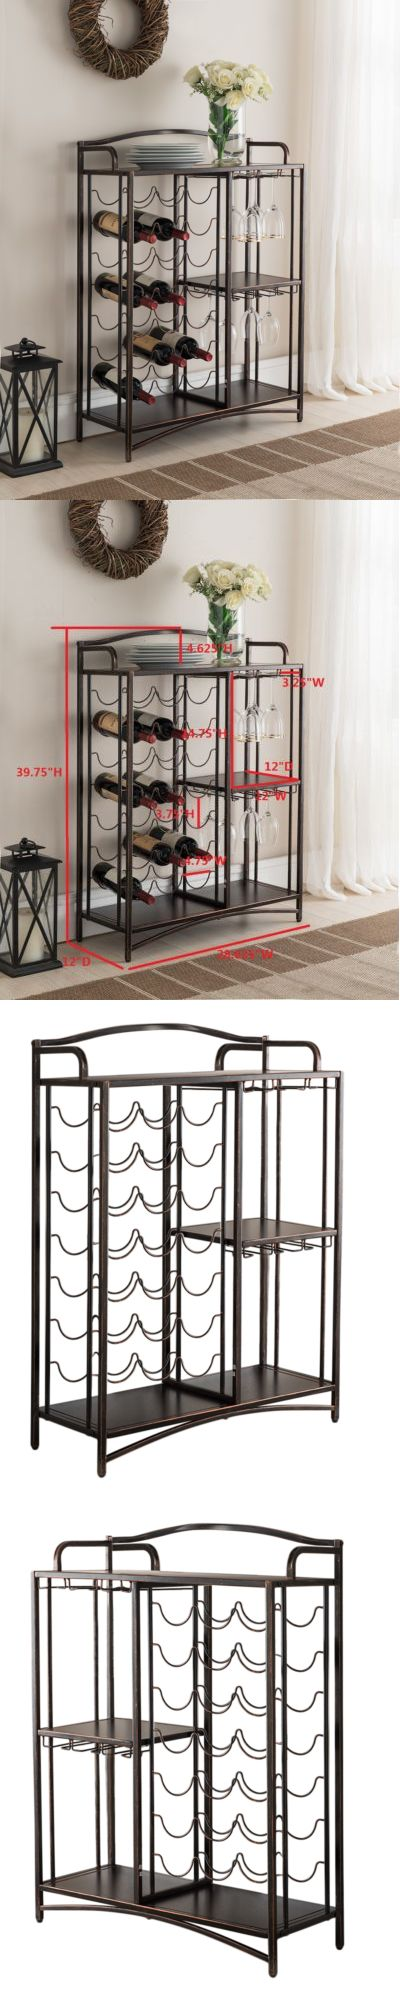 Wine Racks and Bottle Holders 20689: Kings Brand Furniture Metal Console Table Wine Rack Buffet Server -> BUY IT NOW ONLY: $109.99 on eBay!